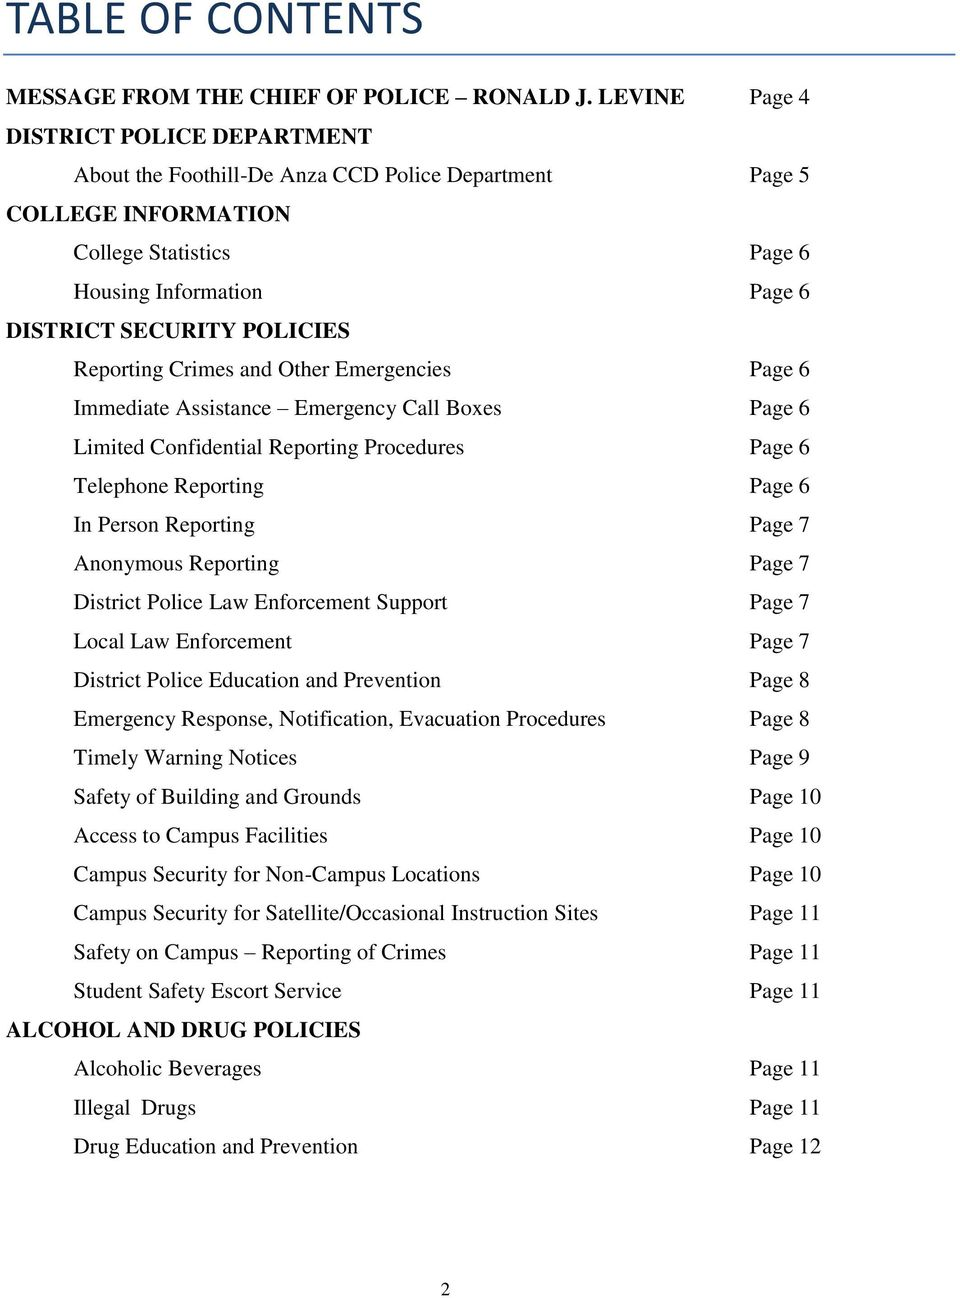 Reporting Crimes and Other Emergencies Page 6 Immediate Assistance Emergency Call Boxes Page 6 Limited Confidential Reporting Procedures Page 6 Telephone Reporting Page 6 In Person Reporting Page 7